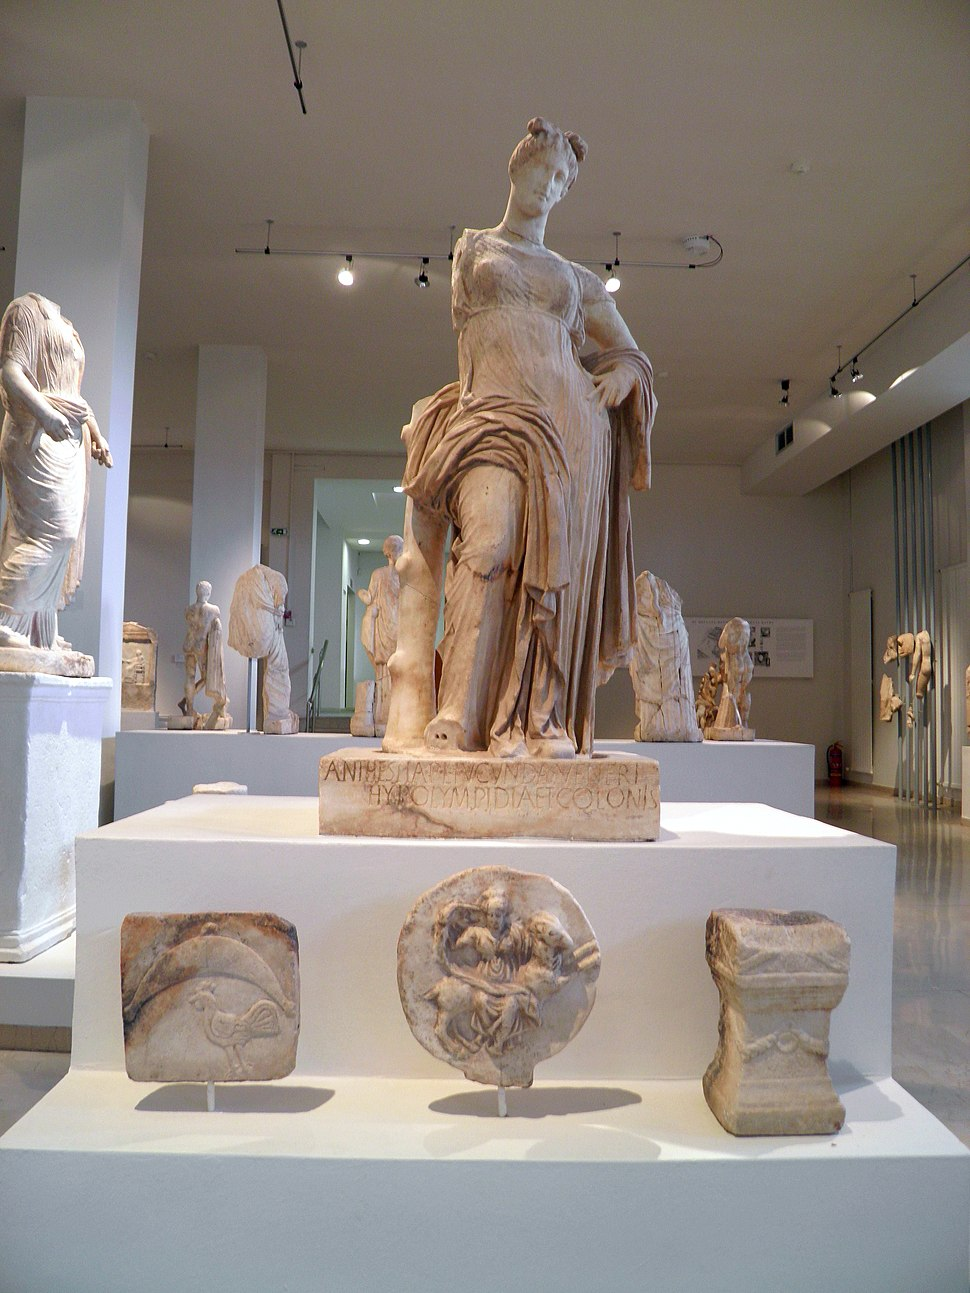 Marble cult statue of Aphrodite Hypolympidia and votive offerings, from the santuary of Isis, 2nd c. BC, Archaeological Museum, Dion (6933887966)